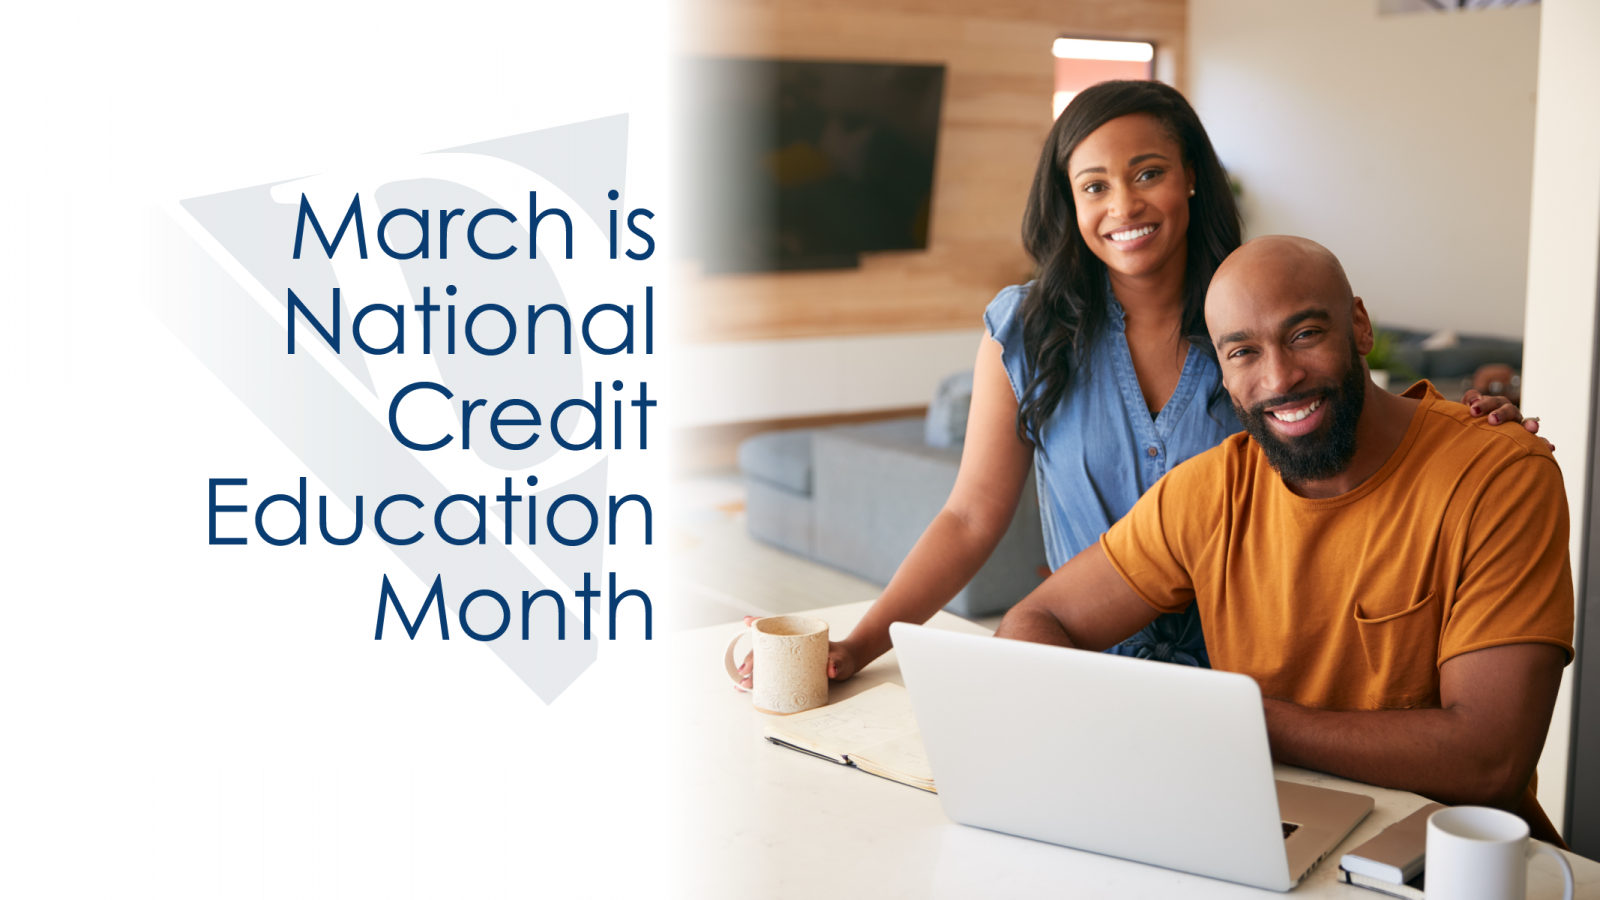 March is National Credit Education Month